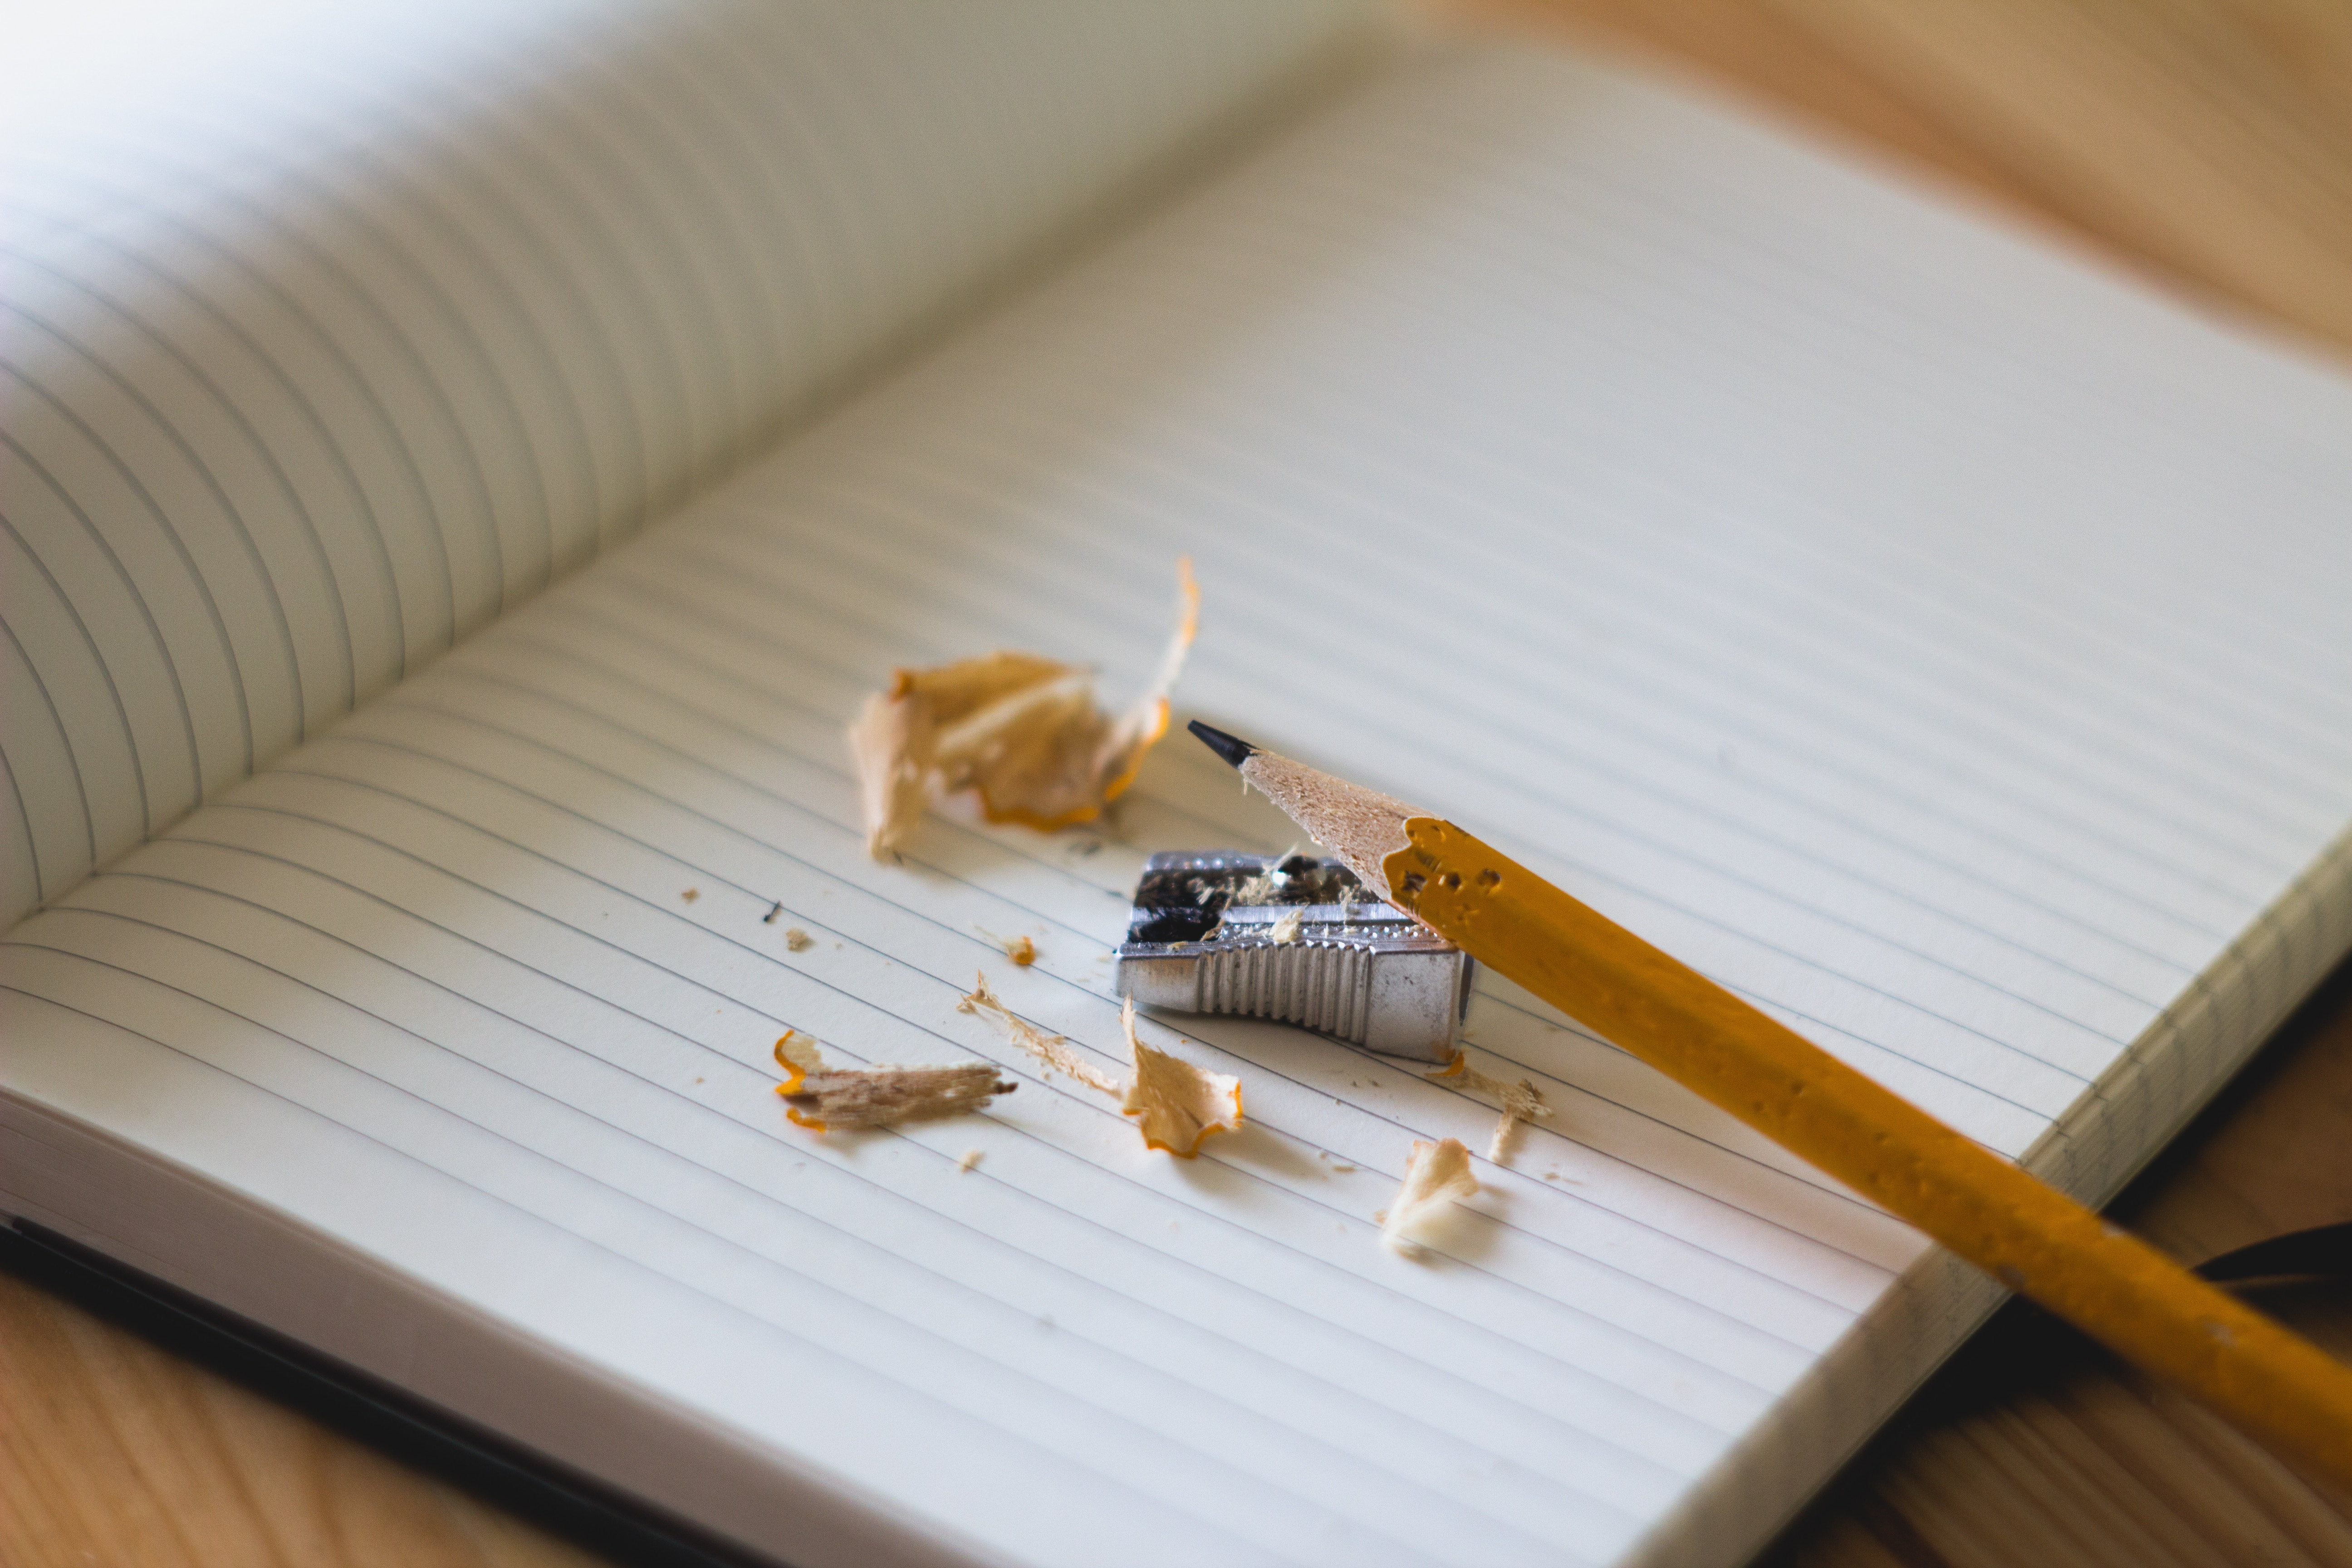 yellow pencil, pencil sharpener and fresh pencil shavings on top of a notebook